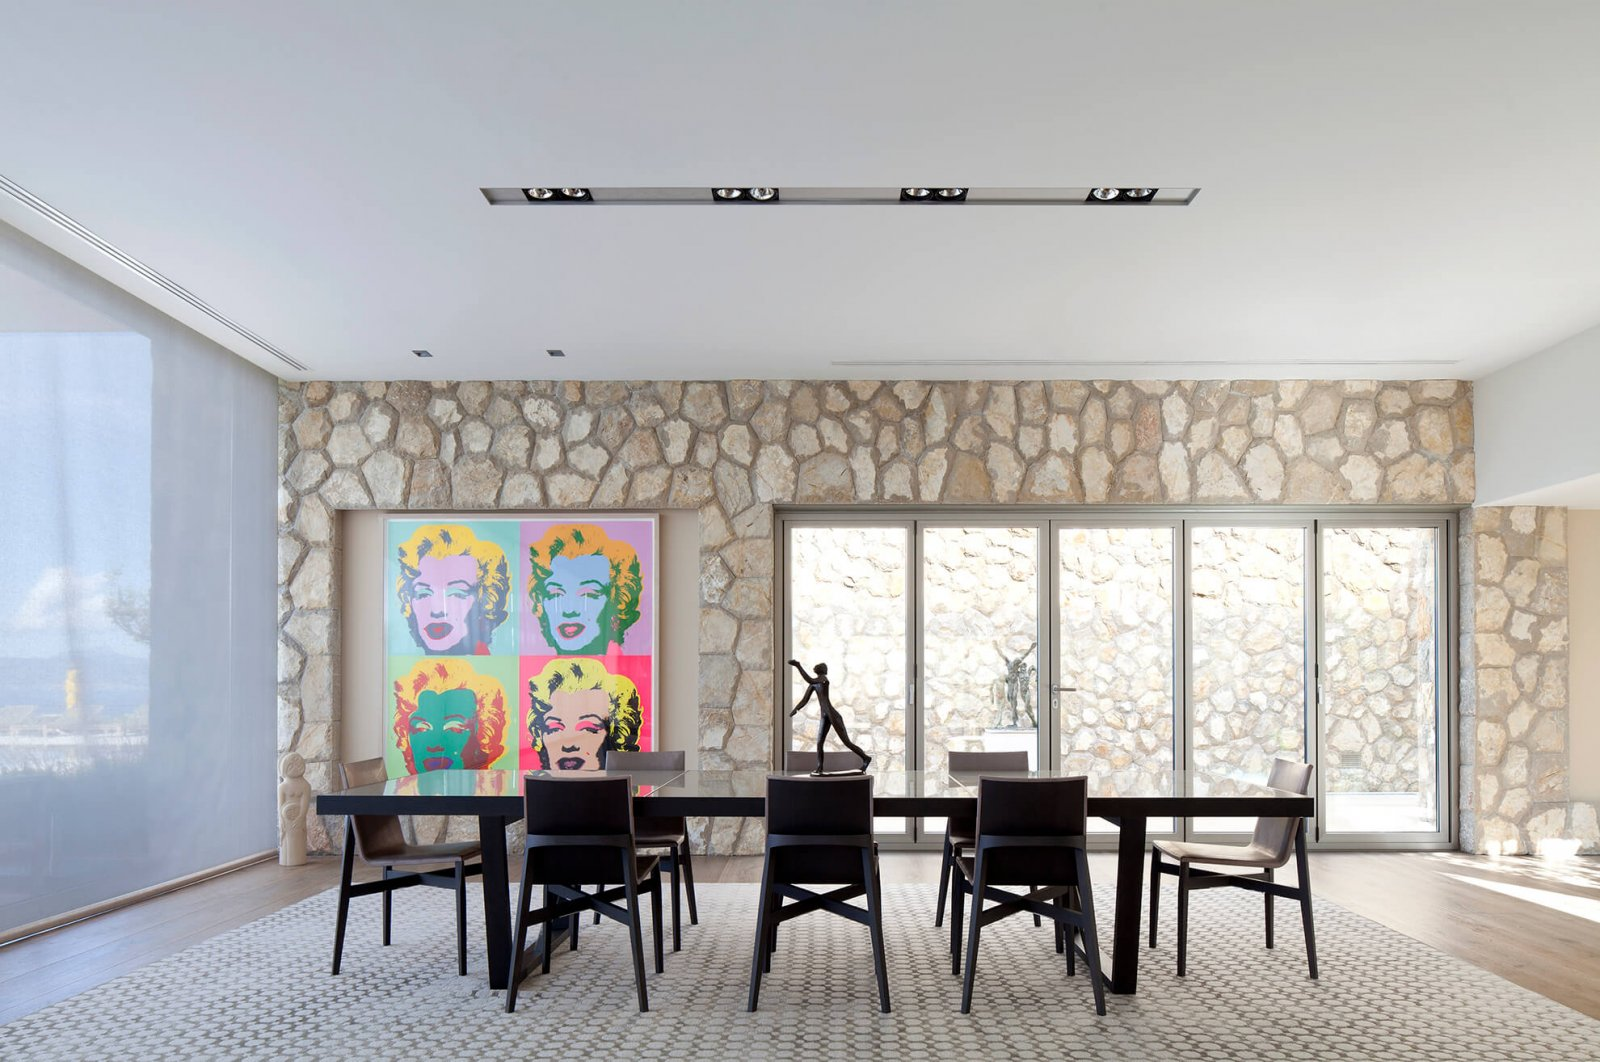 Another detail view of the large dining room table, in front of the sliding glass doors that lead a side garden entrance